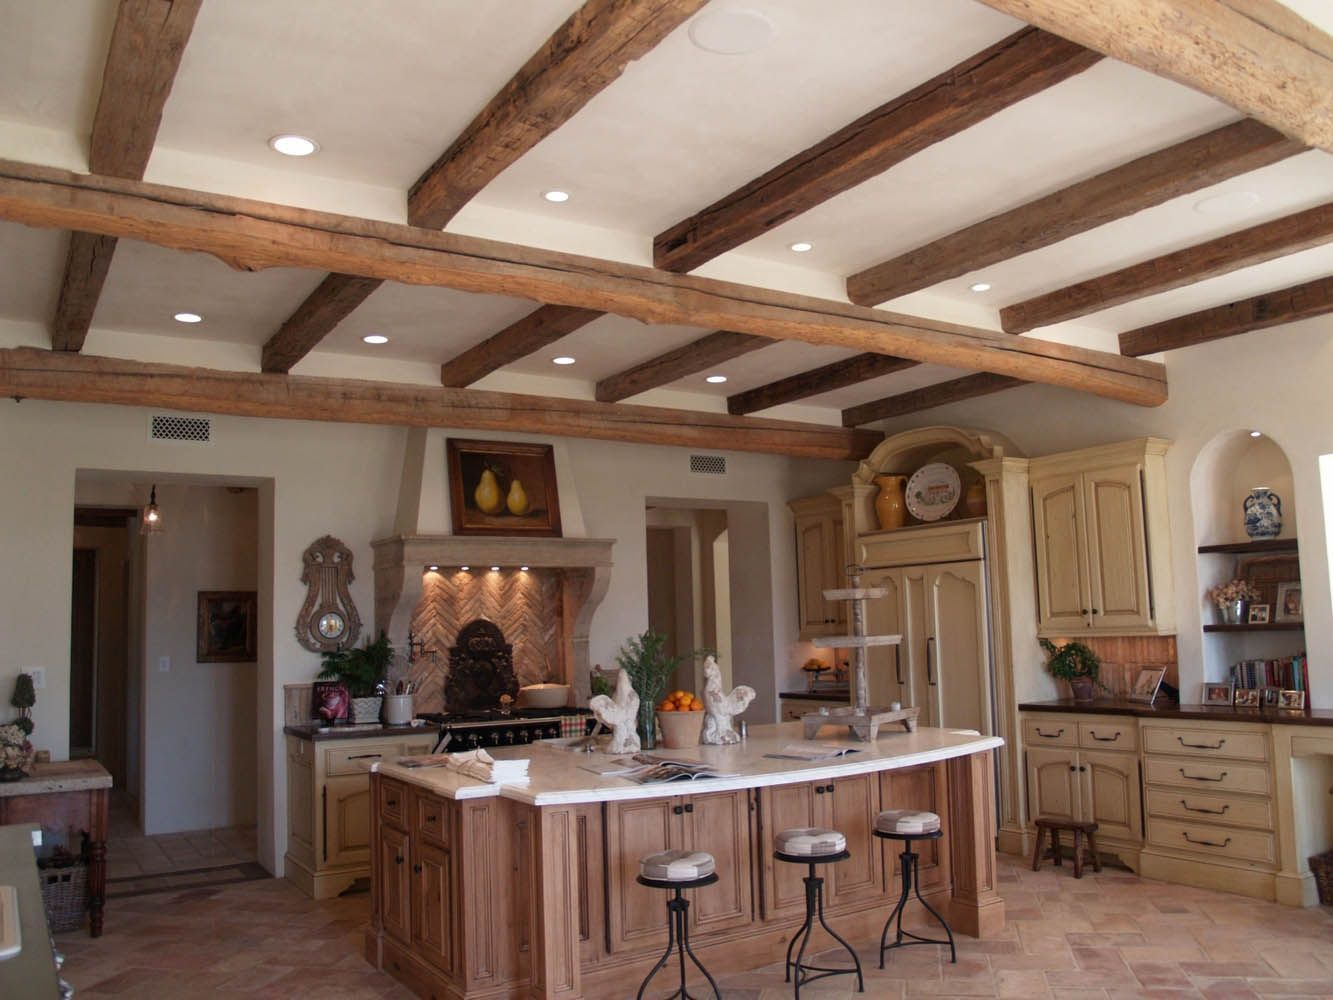 3x8 log siding hand hewn pine - This Kitchen Used 7x7 Live Edge Barn Beams With 7x7 Hand Hewn Barn Beams Products